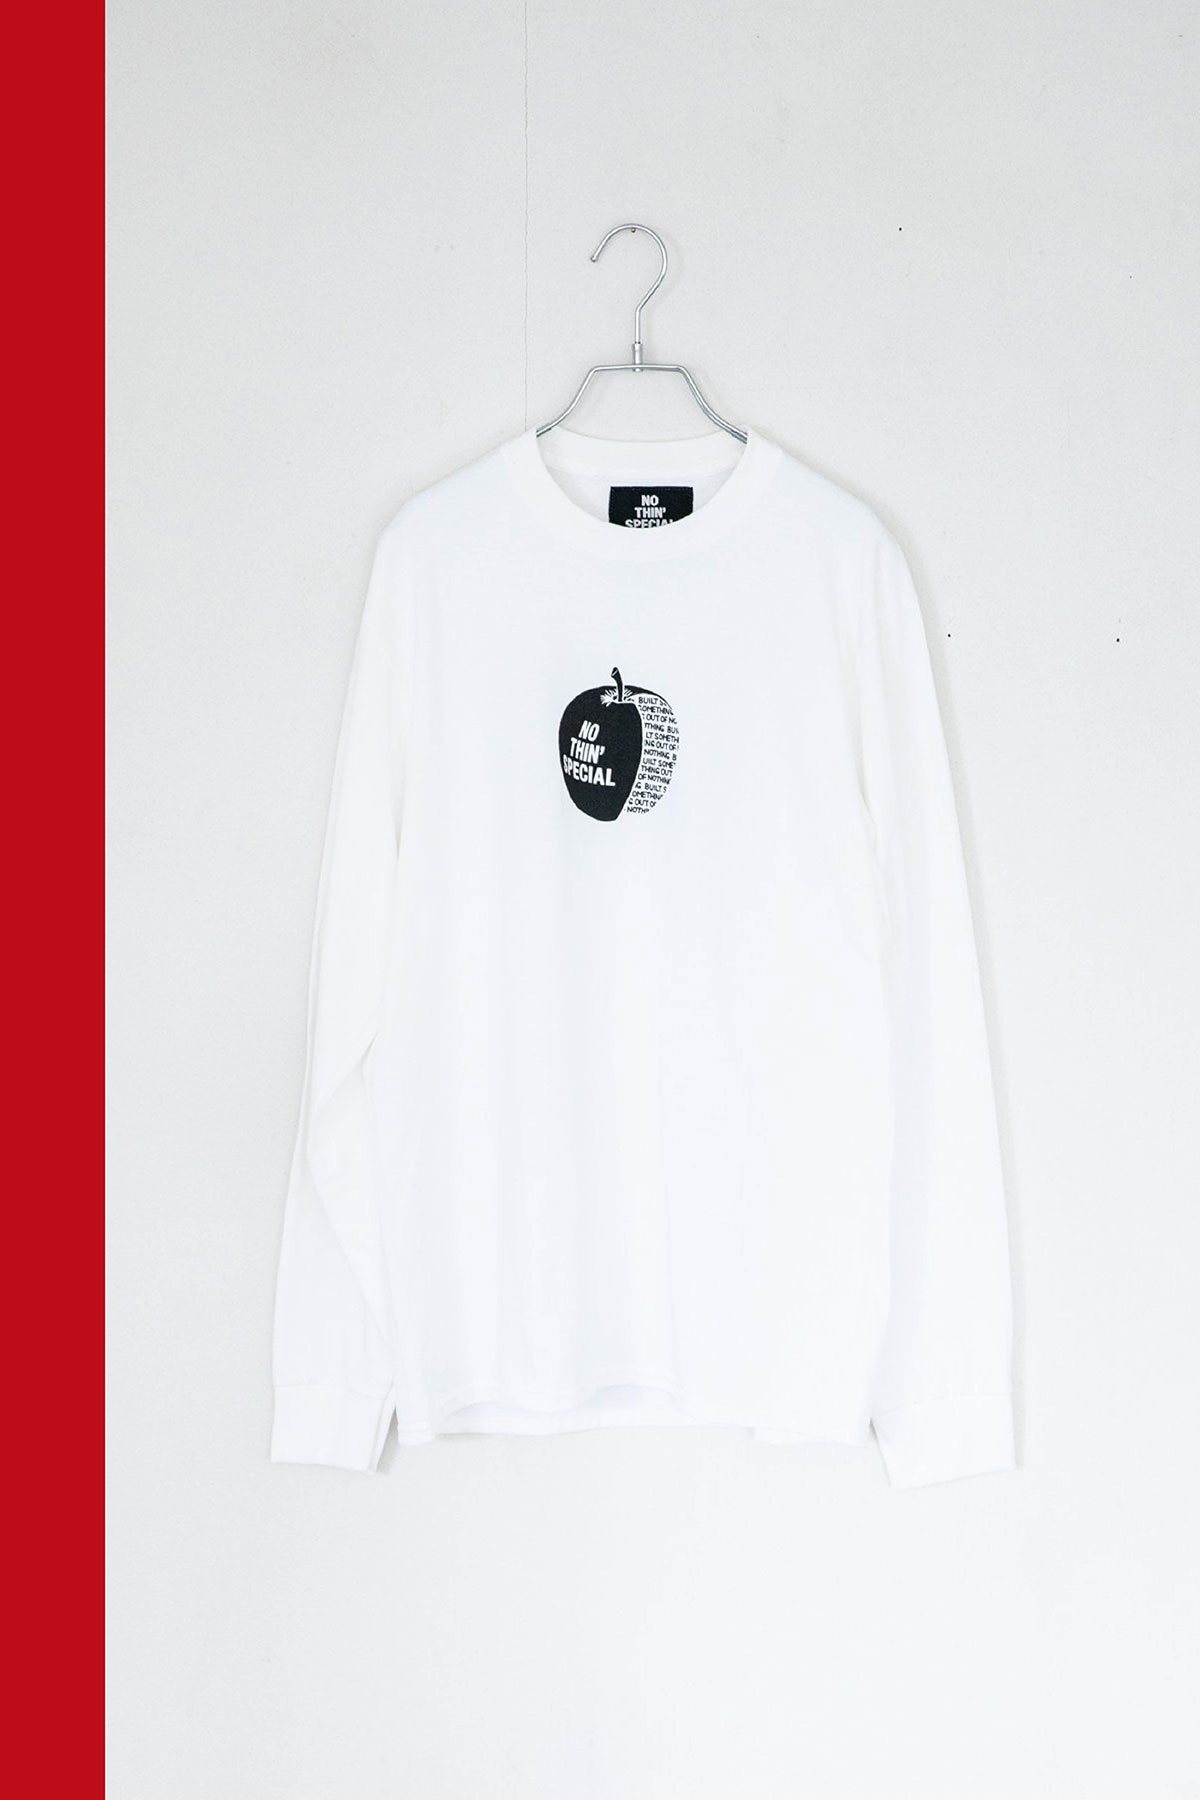 NOTHIN' SPECIAL / APPLE LONG SLEEVE